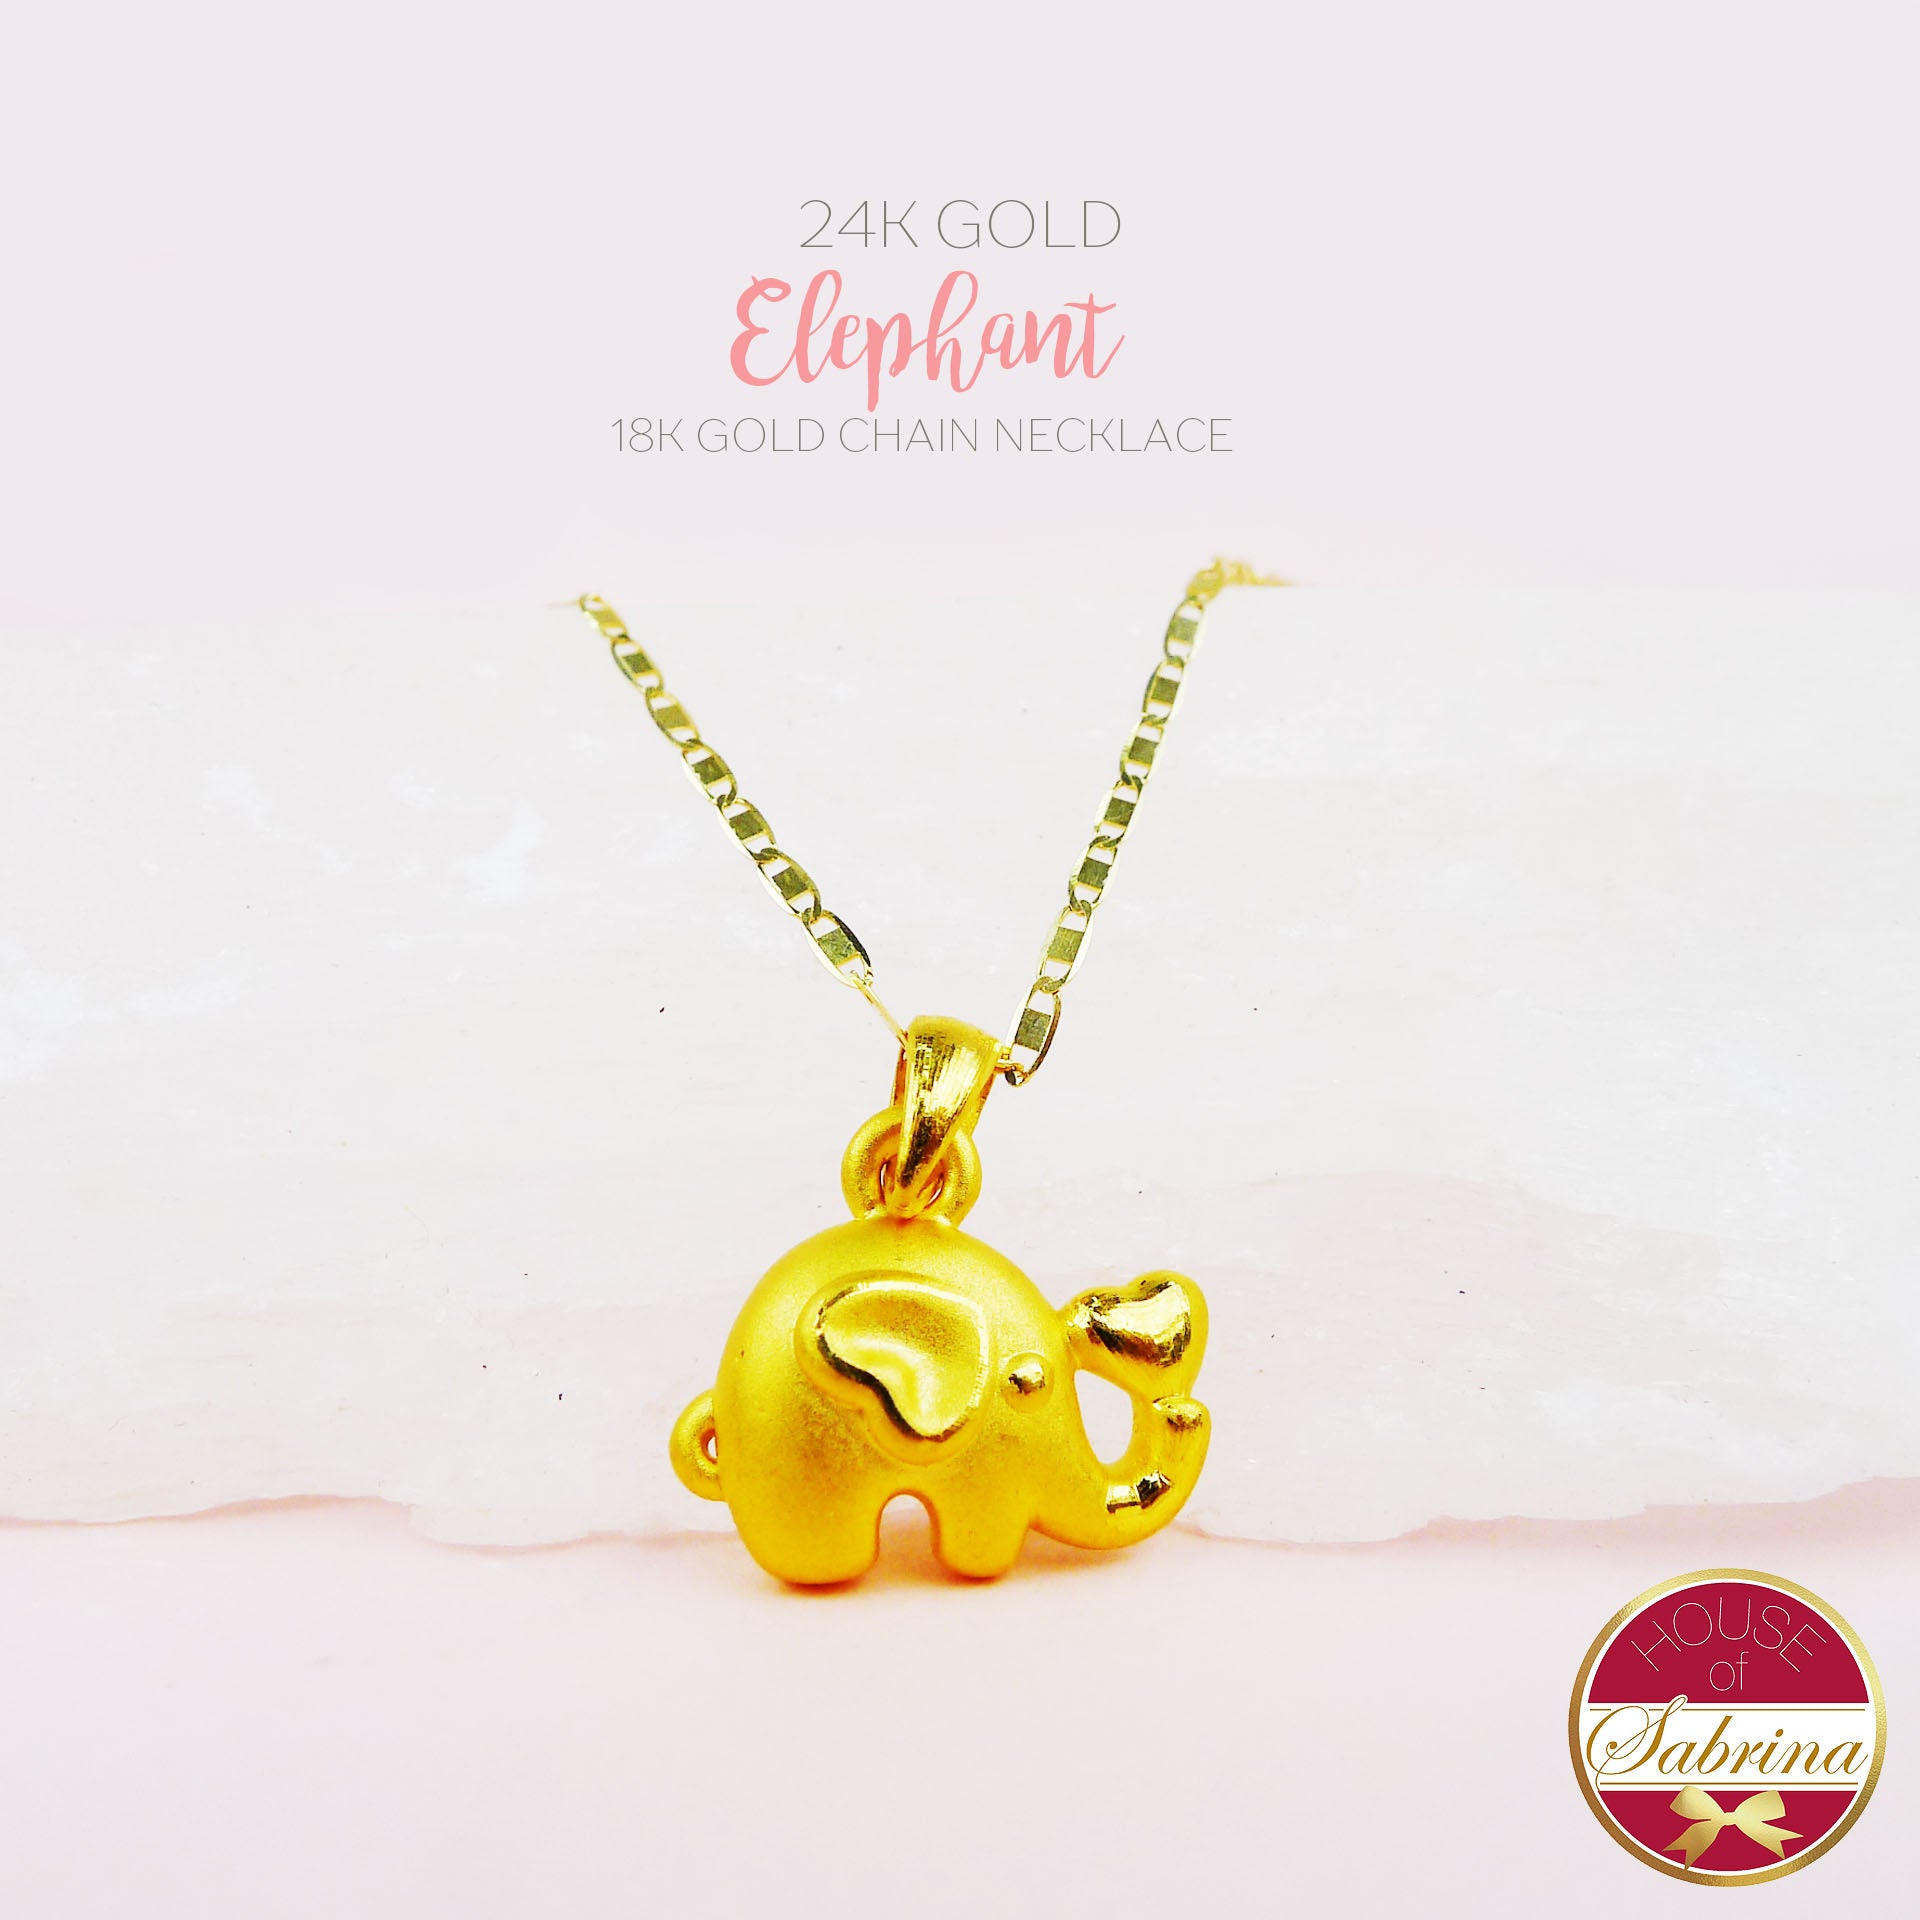 24K GOLD ELEPHANT NECKLACE